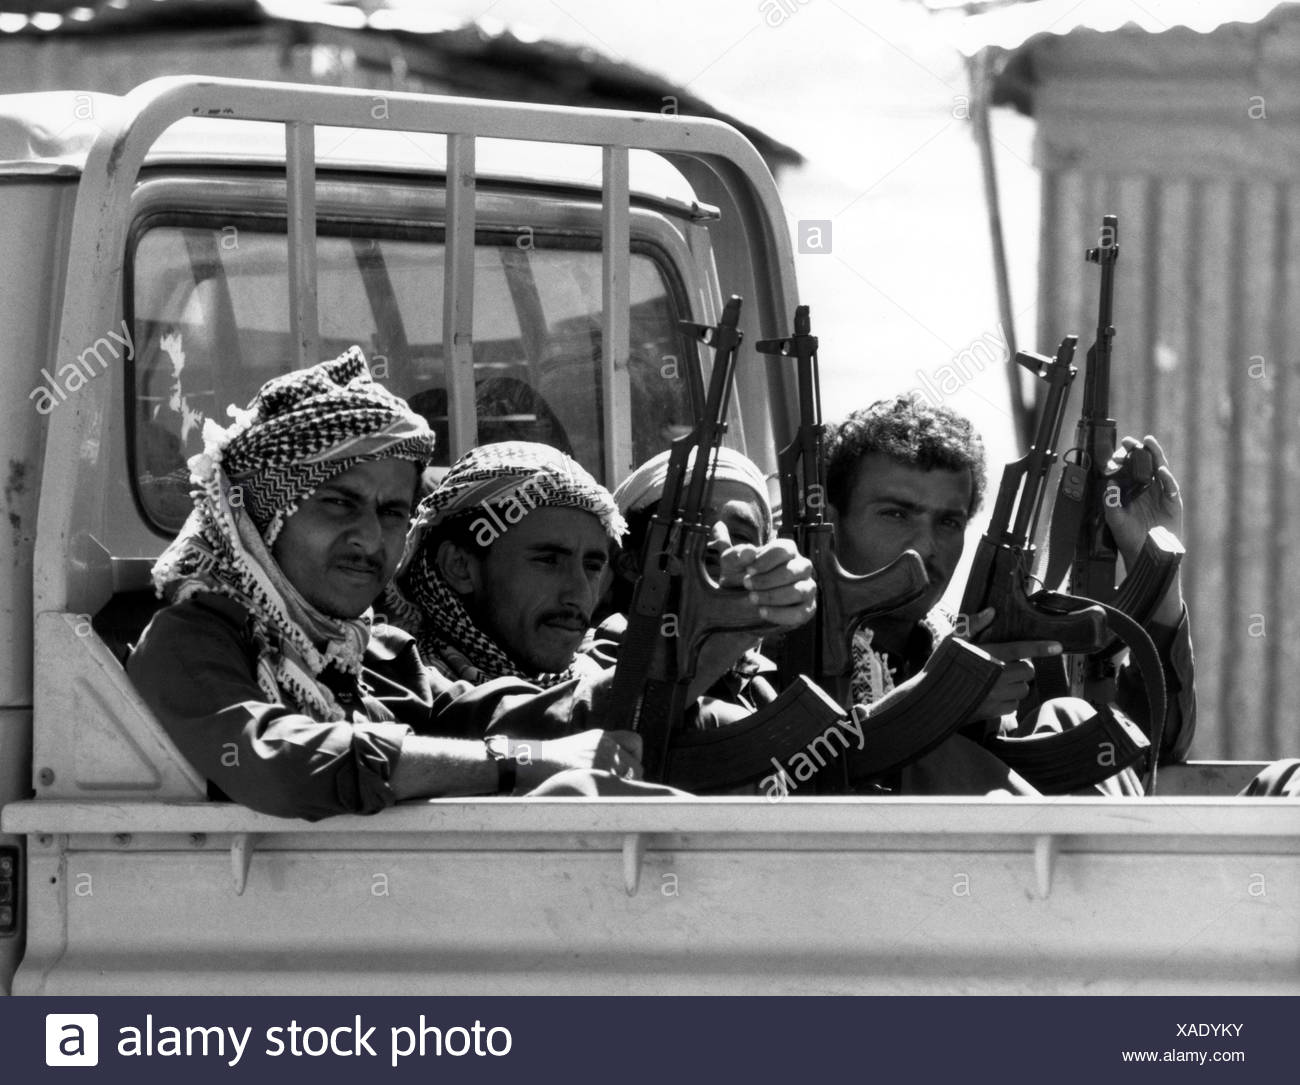 military, Yemen, sldiers on a truck, 1998, weapons, assault rifle, AK47, AK 47, AK-47, Kalashnikov, Arabs, Arabia, 20th century, historic, historical, people, 1990s, Additional-Rights-Clearances-NA - Stock Image